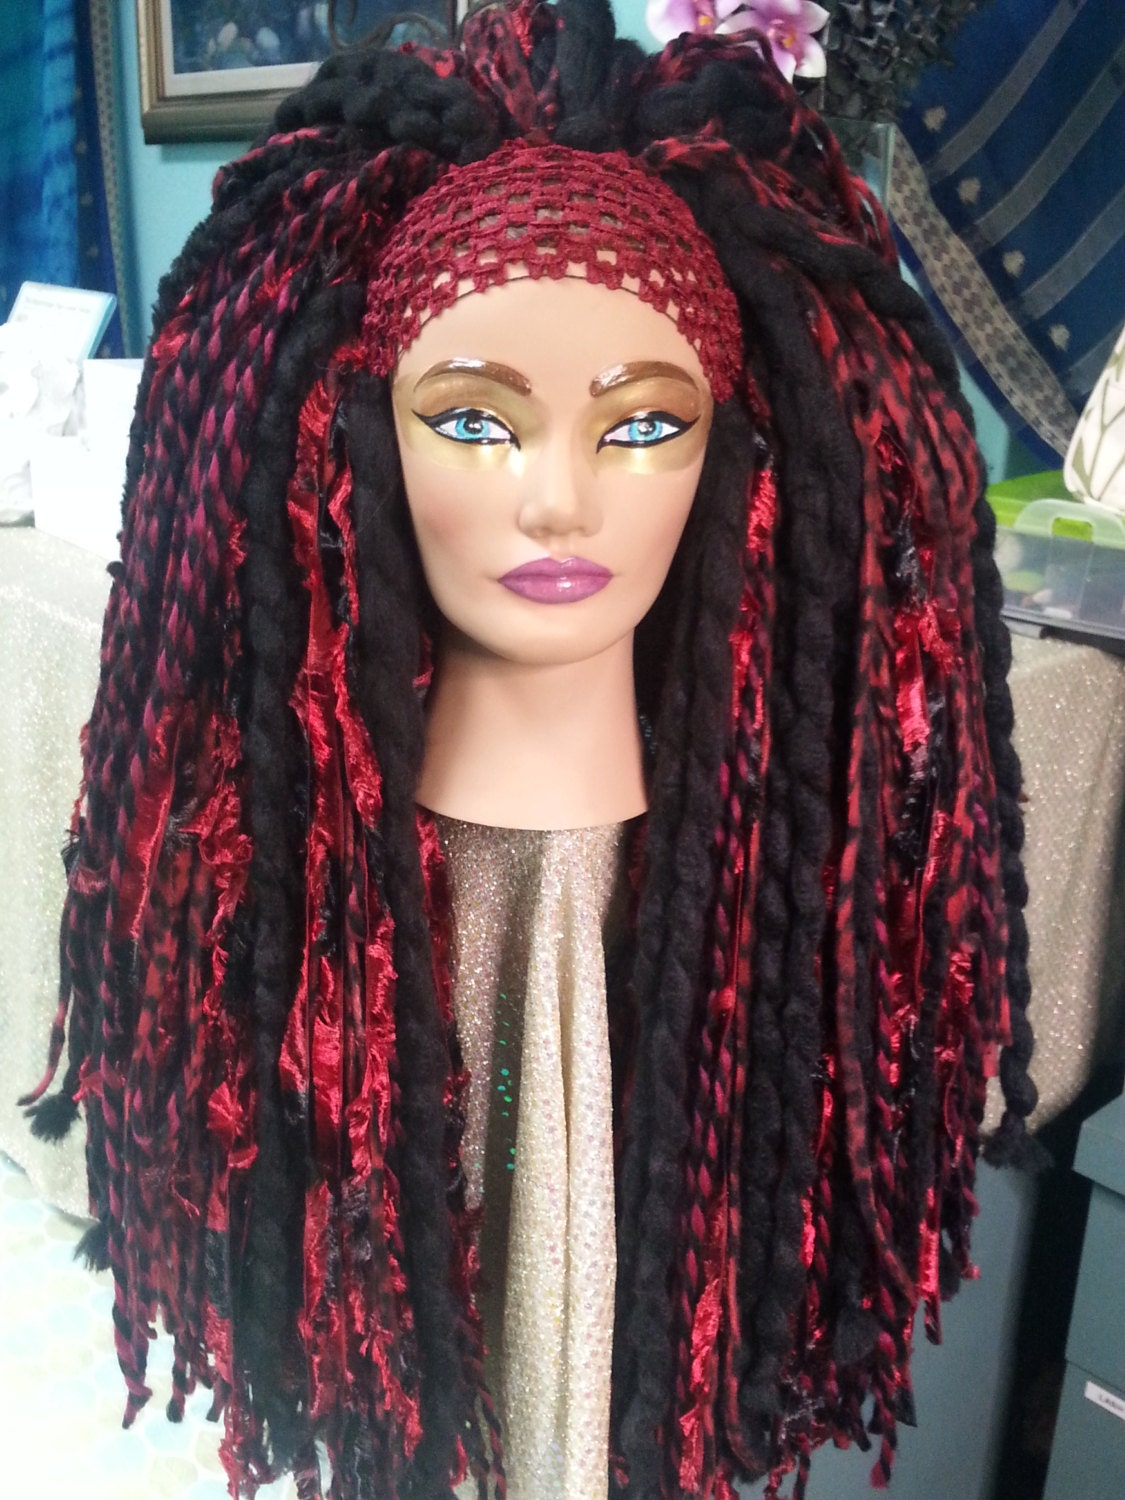 how to make a yarn wig with pantyhose